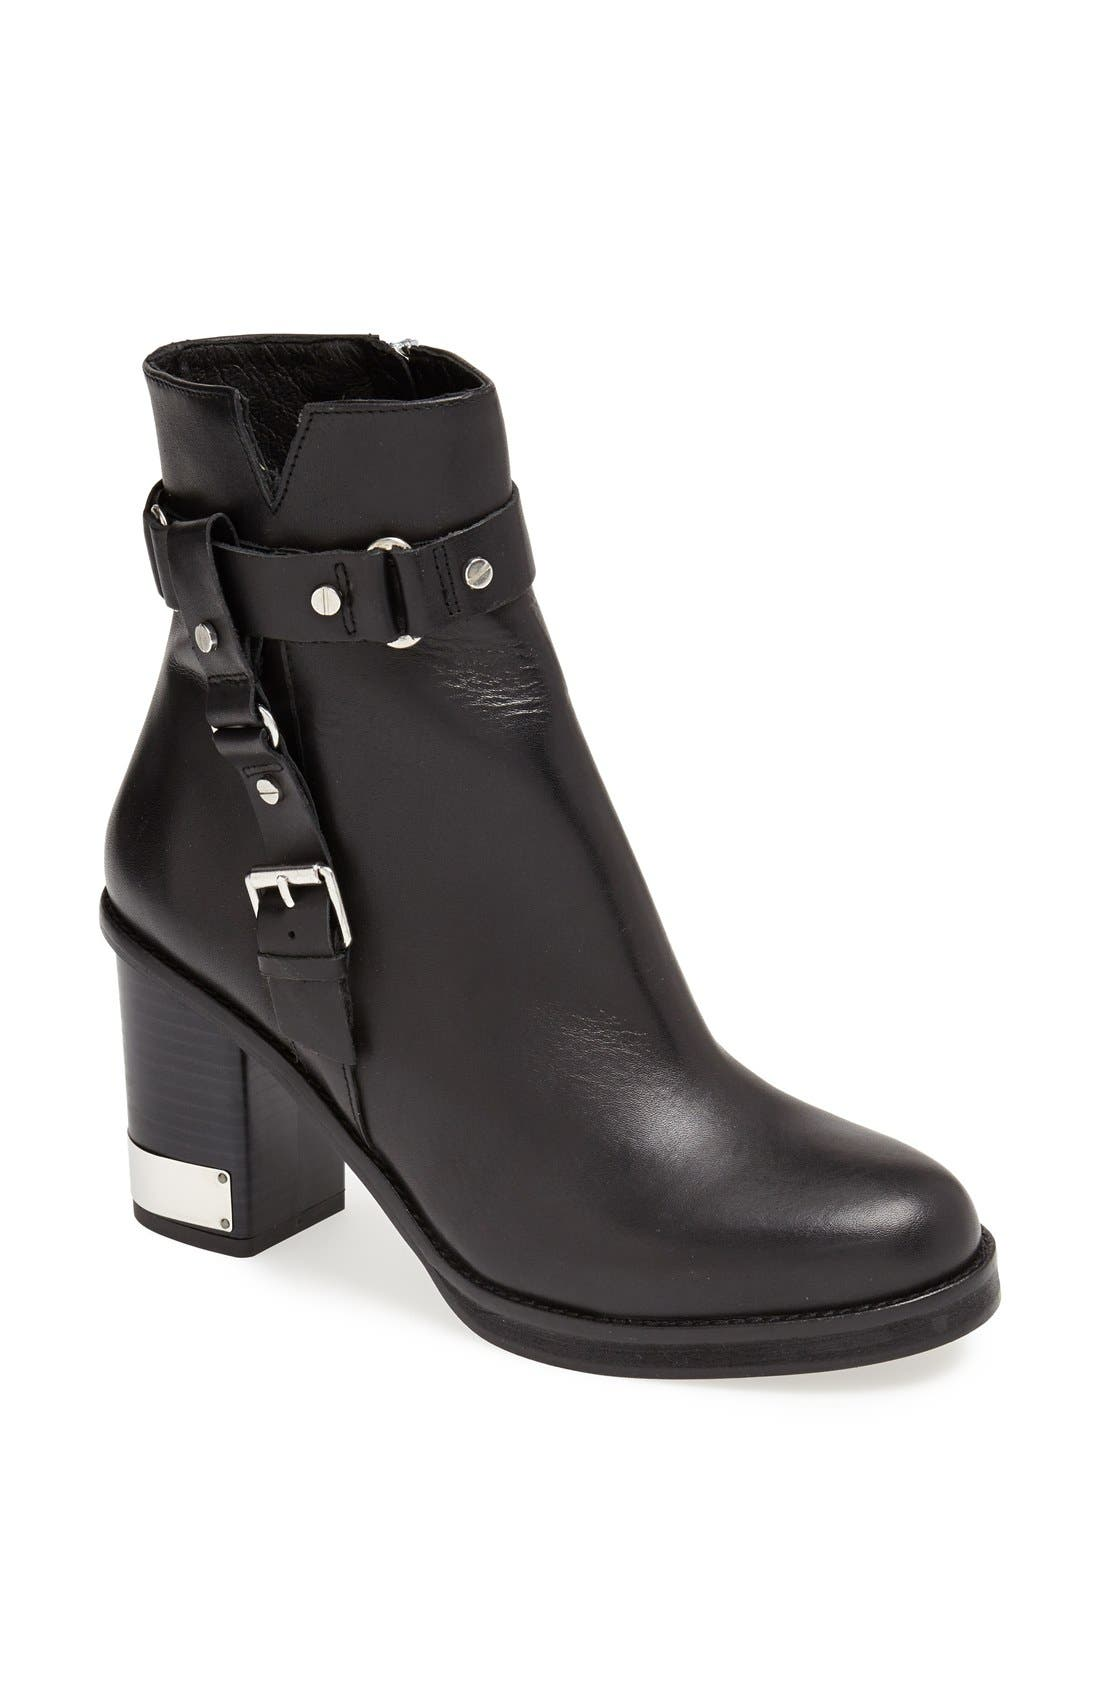 Alternate Image 1 Selected - Topshop 'All Theirs' Ankle Boot